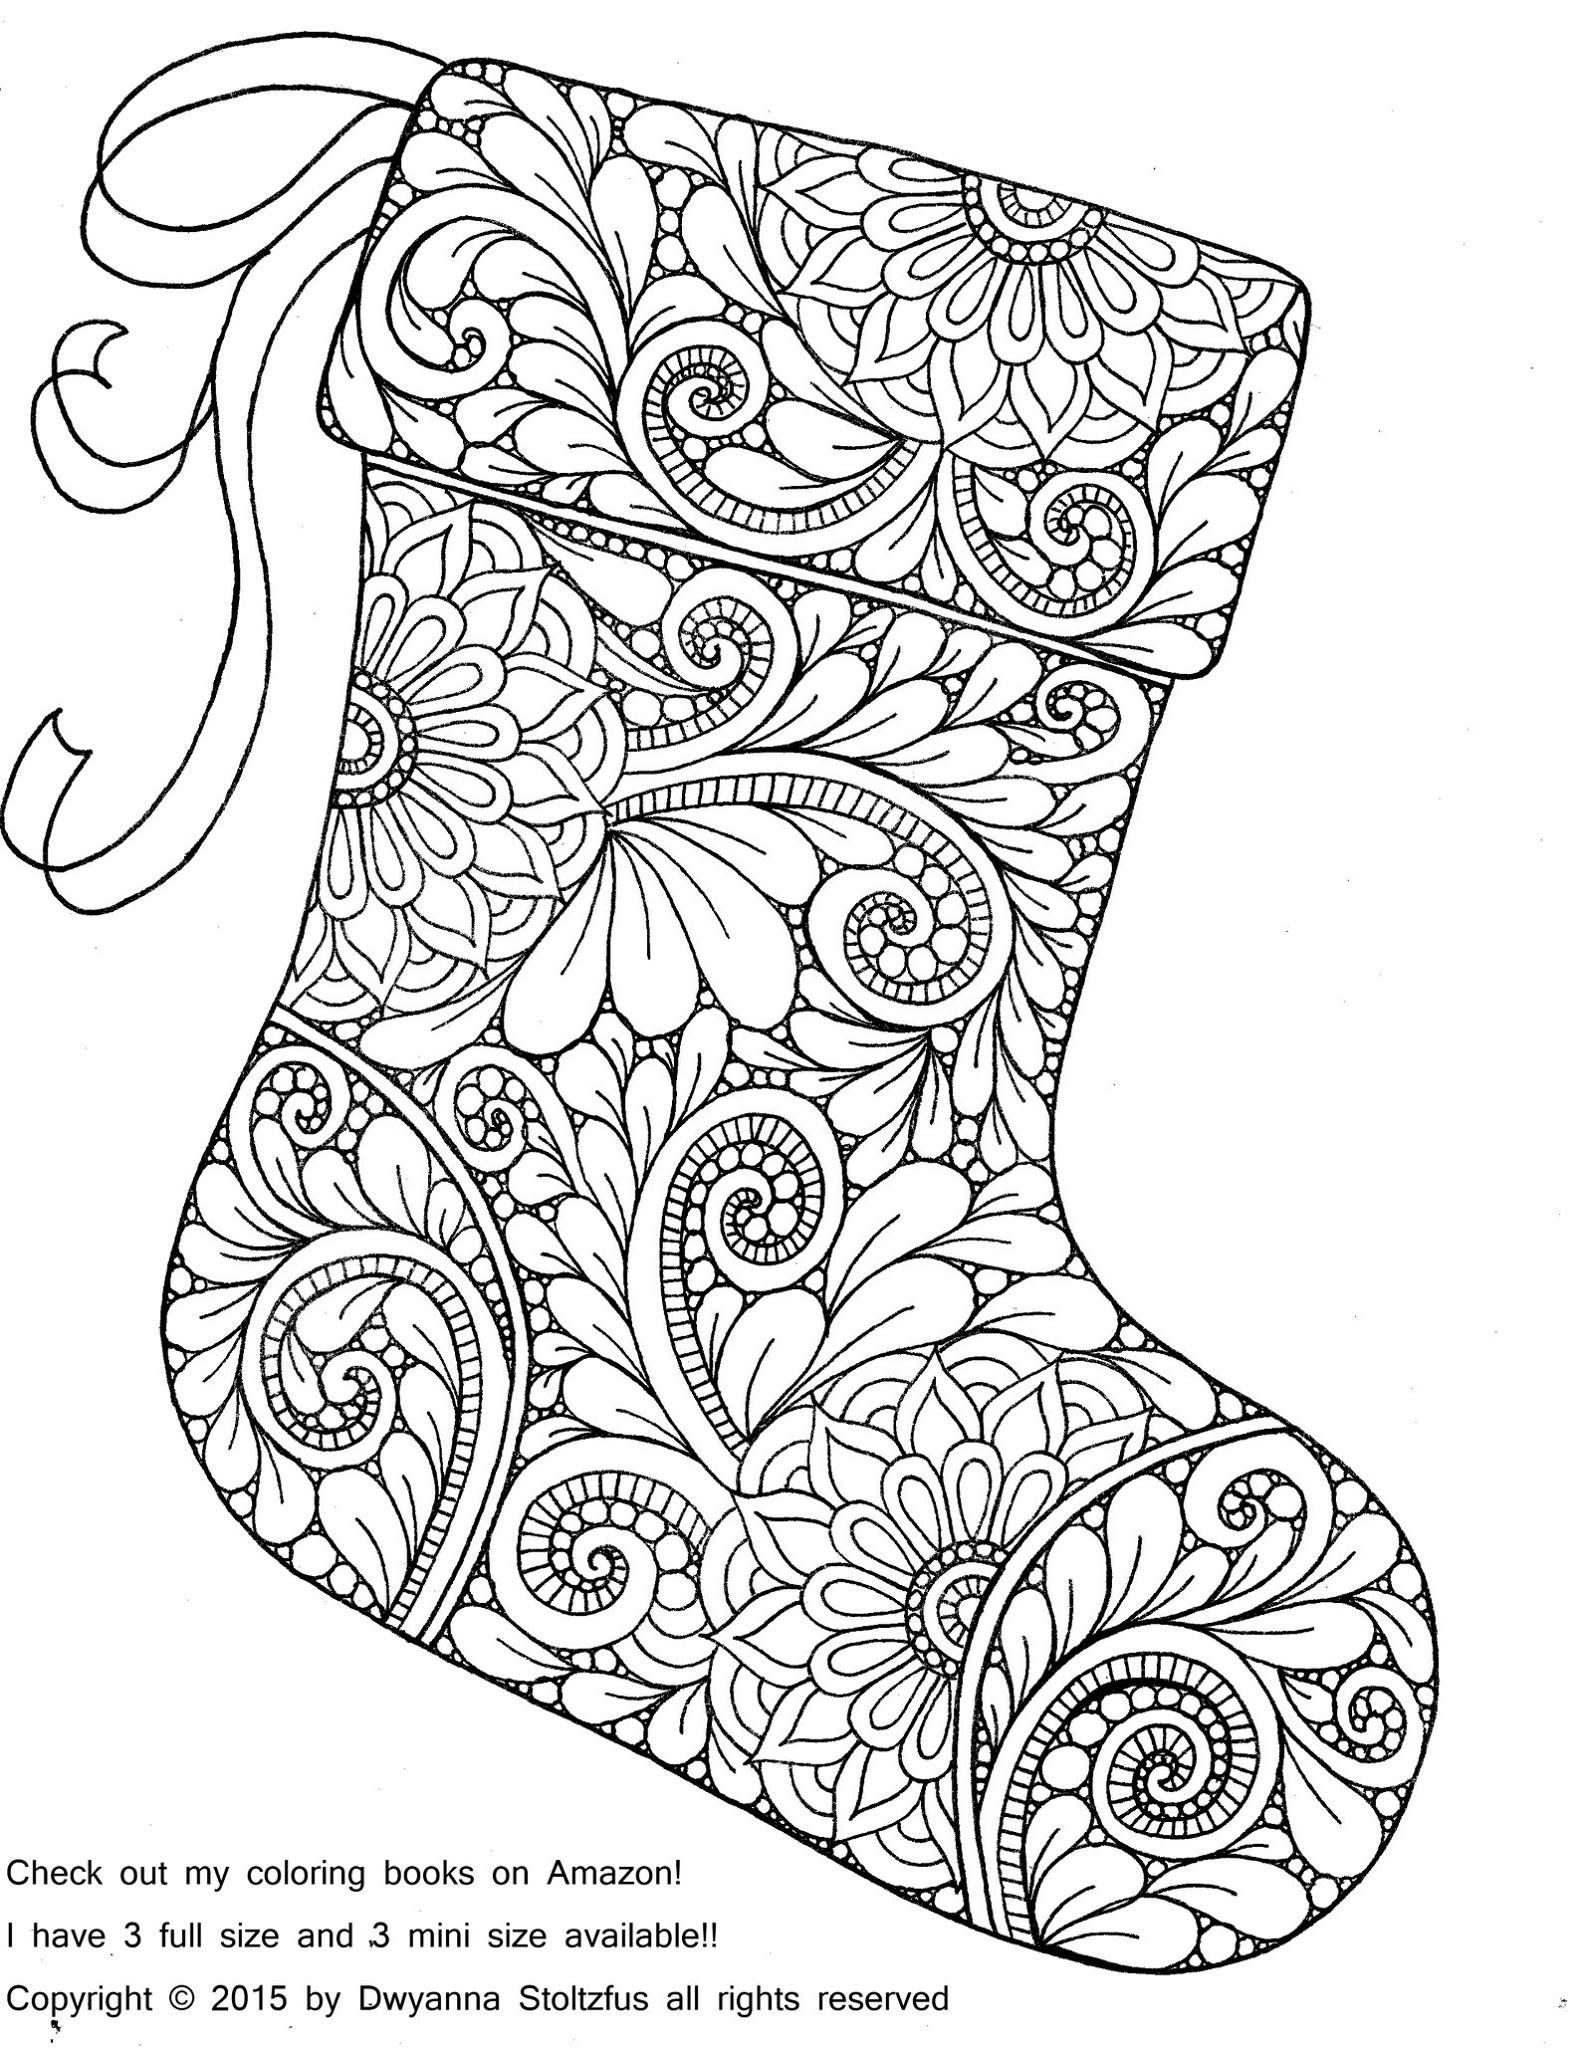 Christmas stocking coloring page | Christmas coloring ...